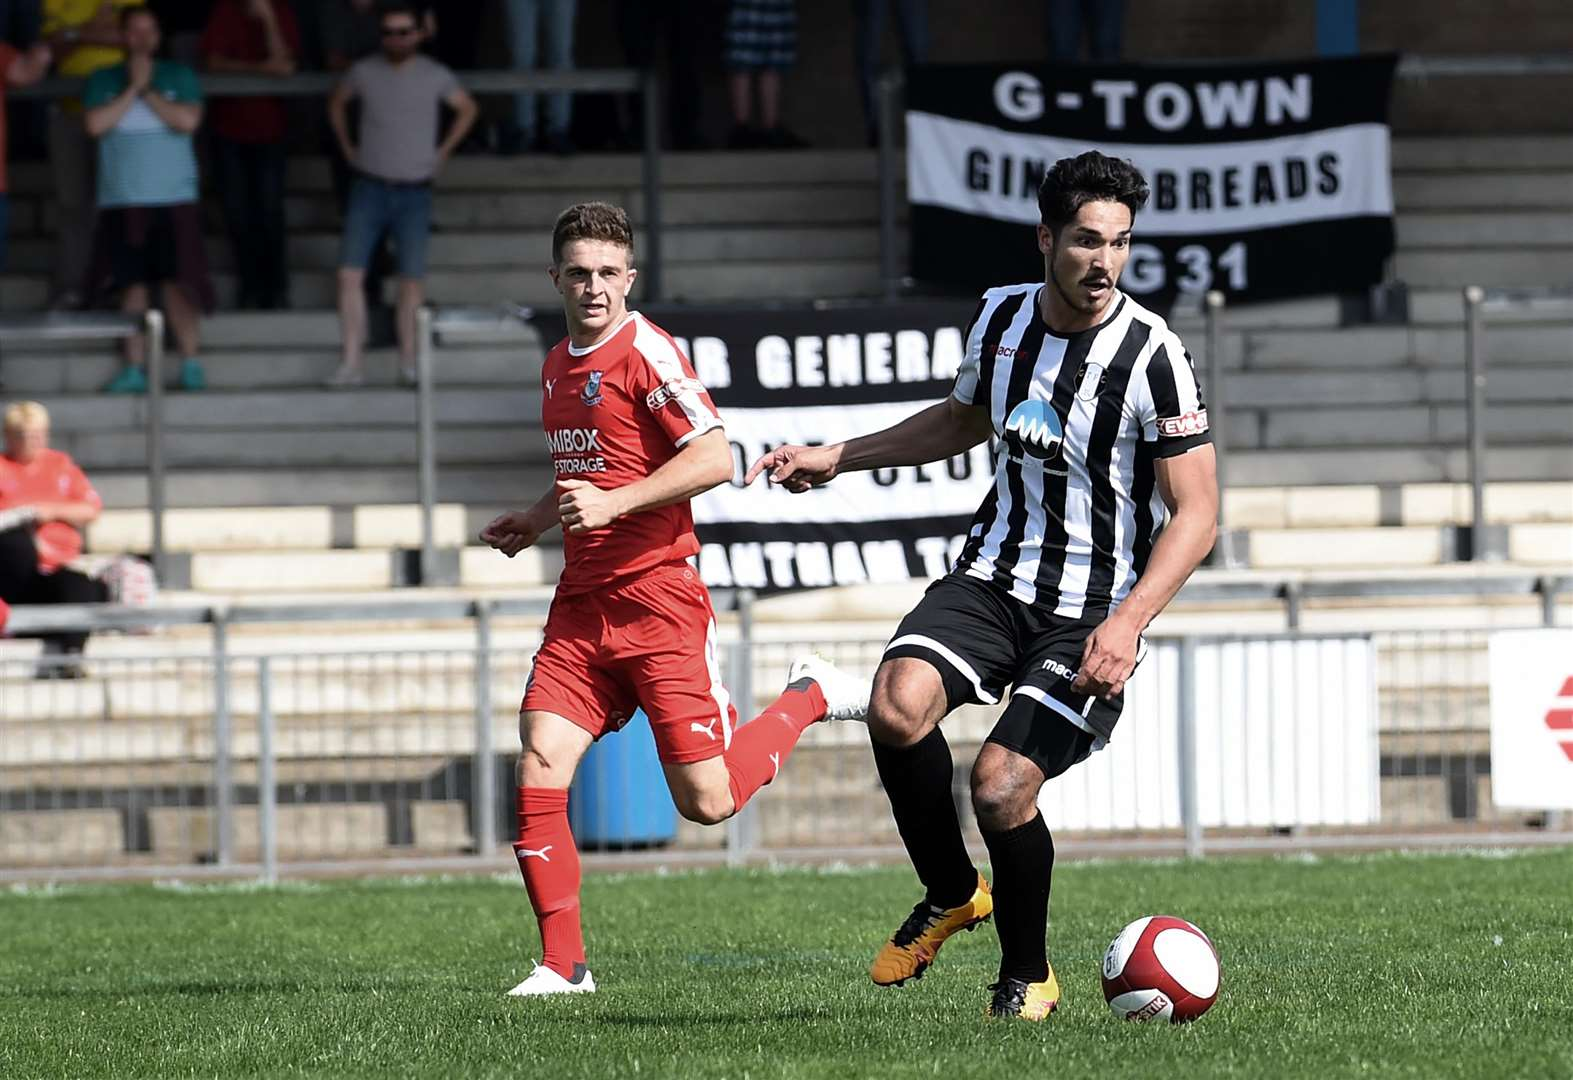 Grantham Town march on in FA Cup campaign